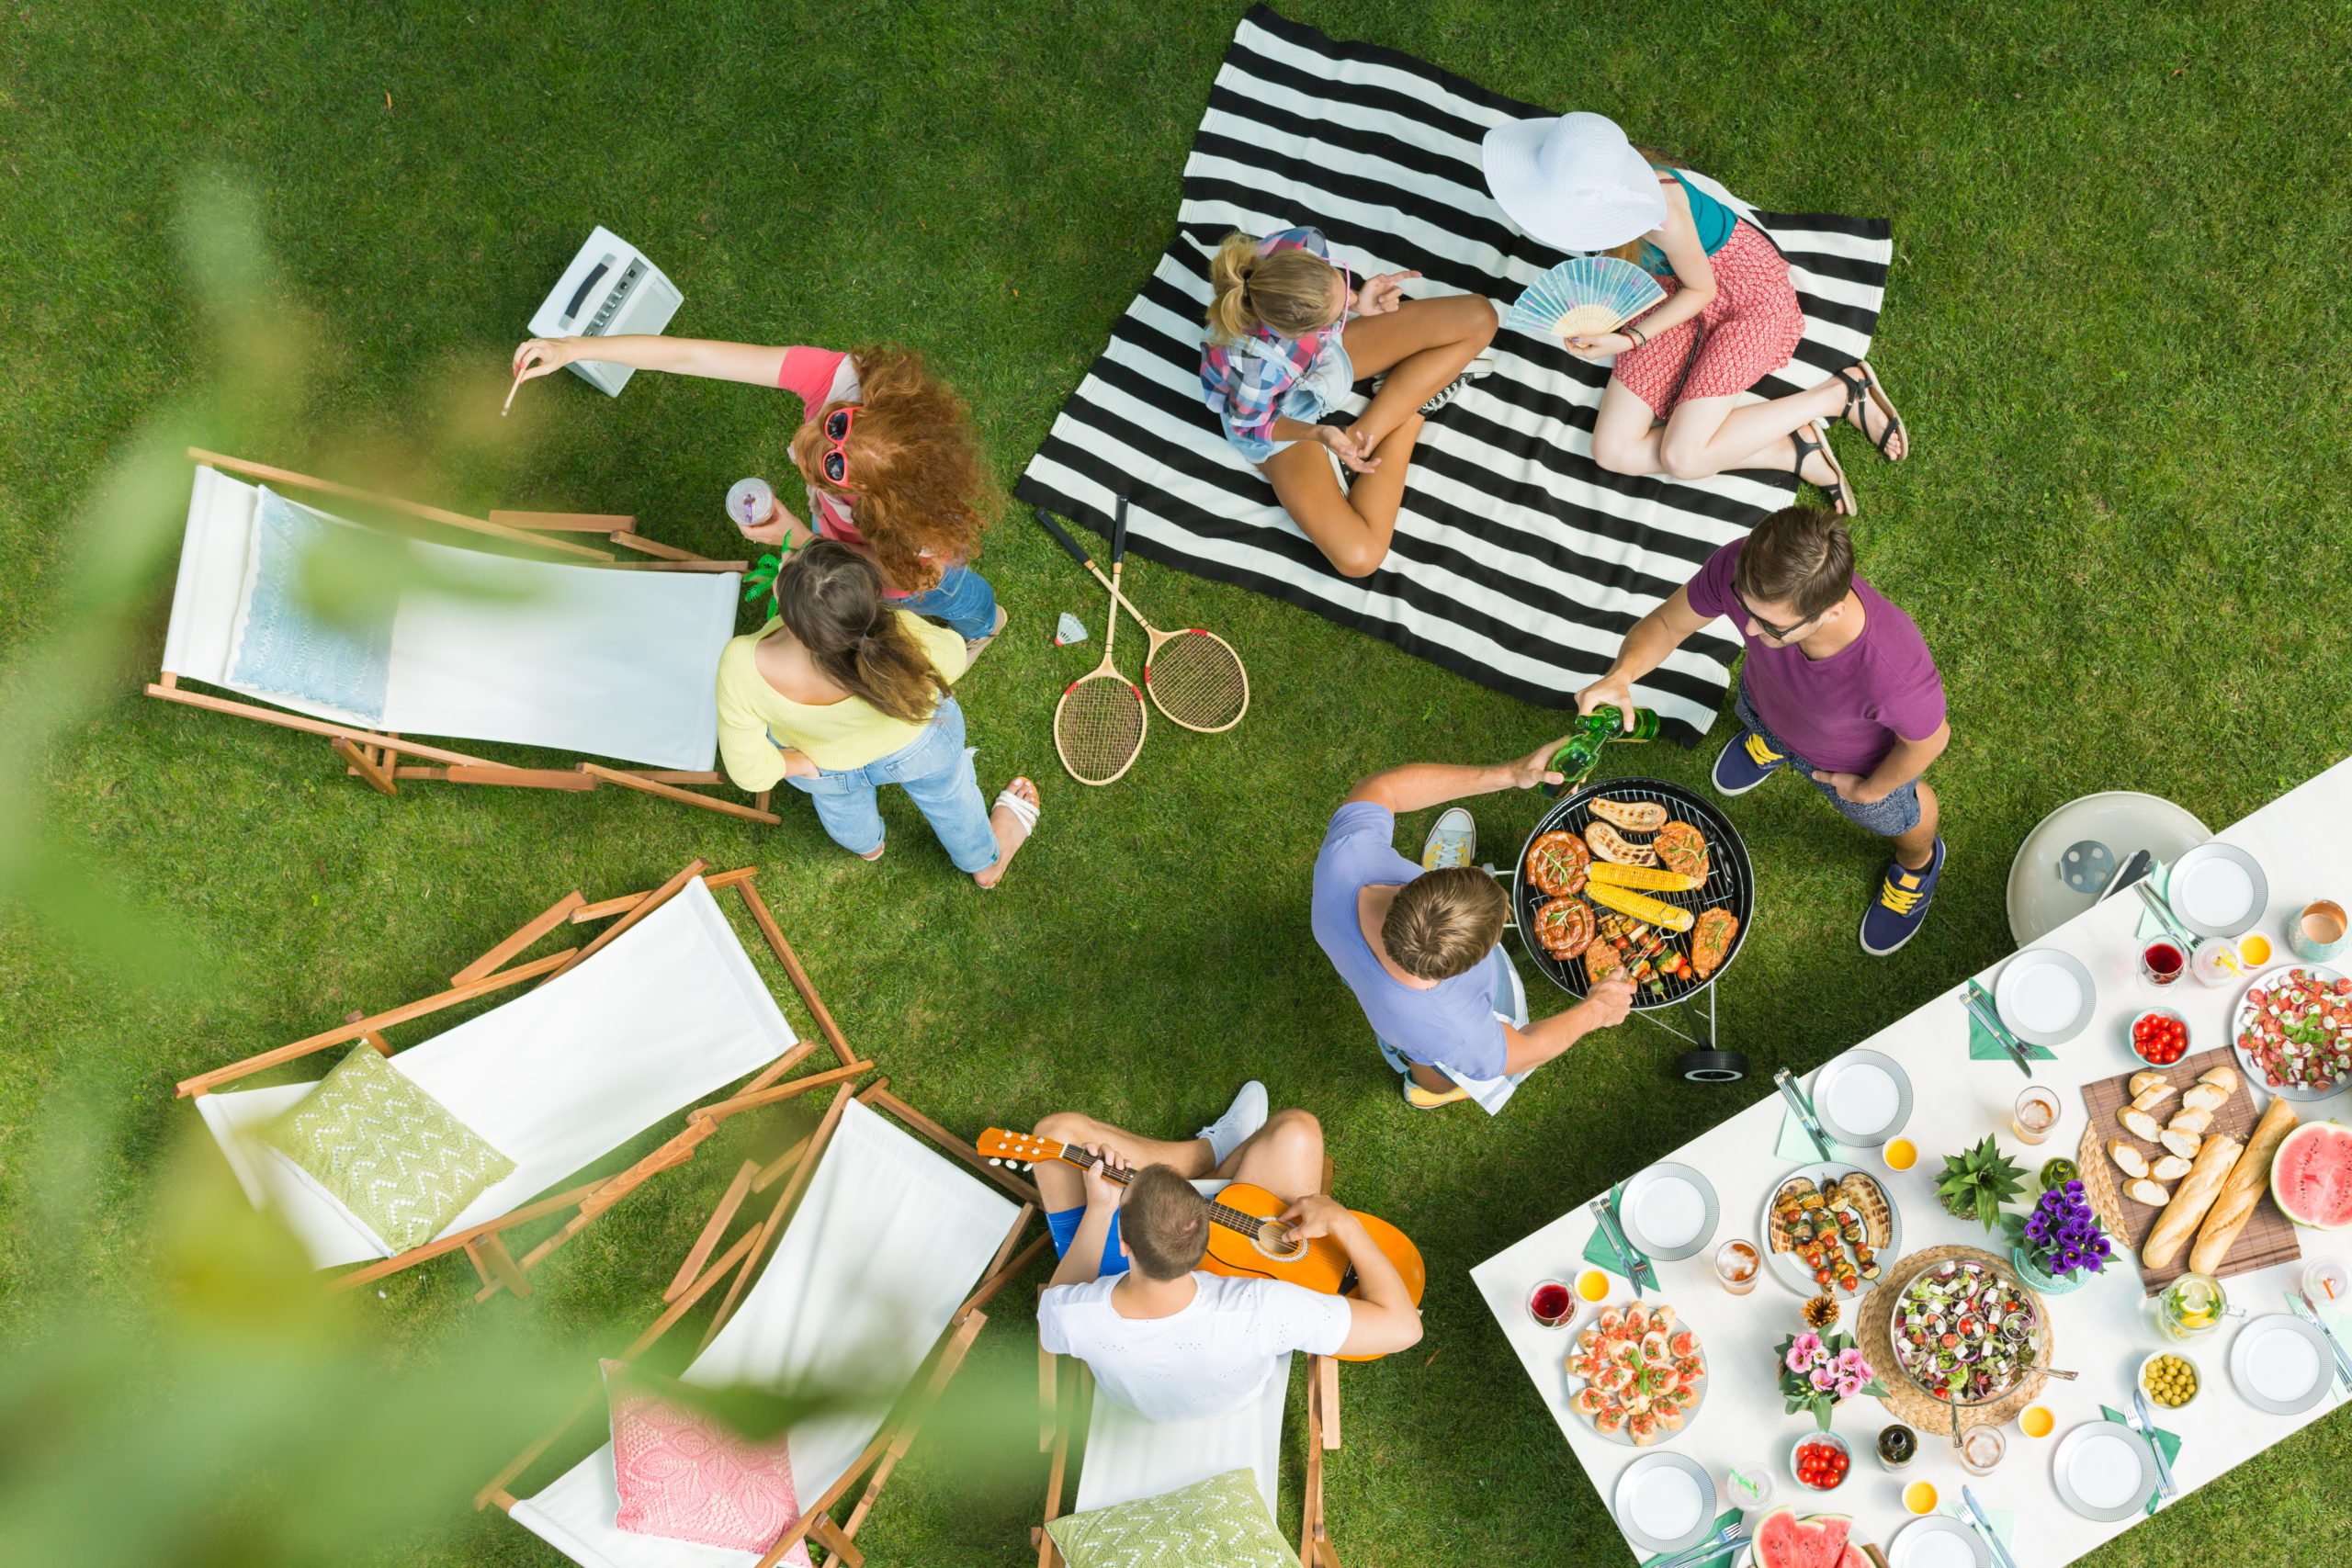 Fire Up Fun with Johnsonville: Set Up the Ultimate Summer Tournament With These 6 Backyard Games